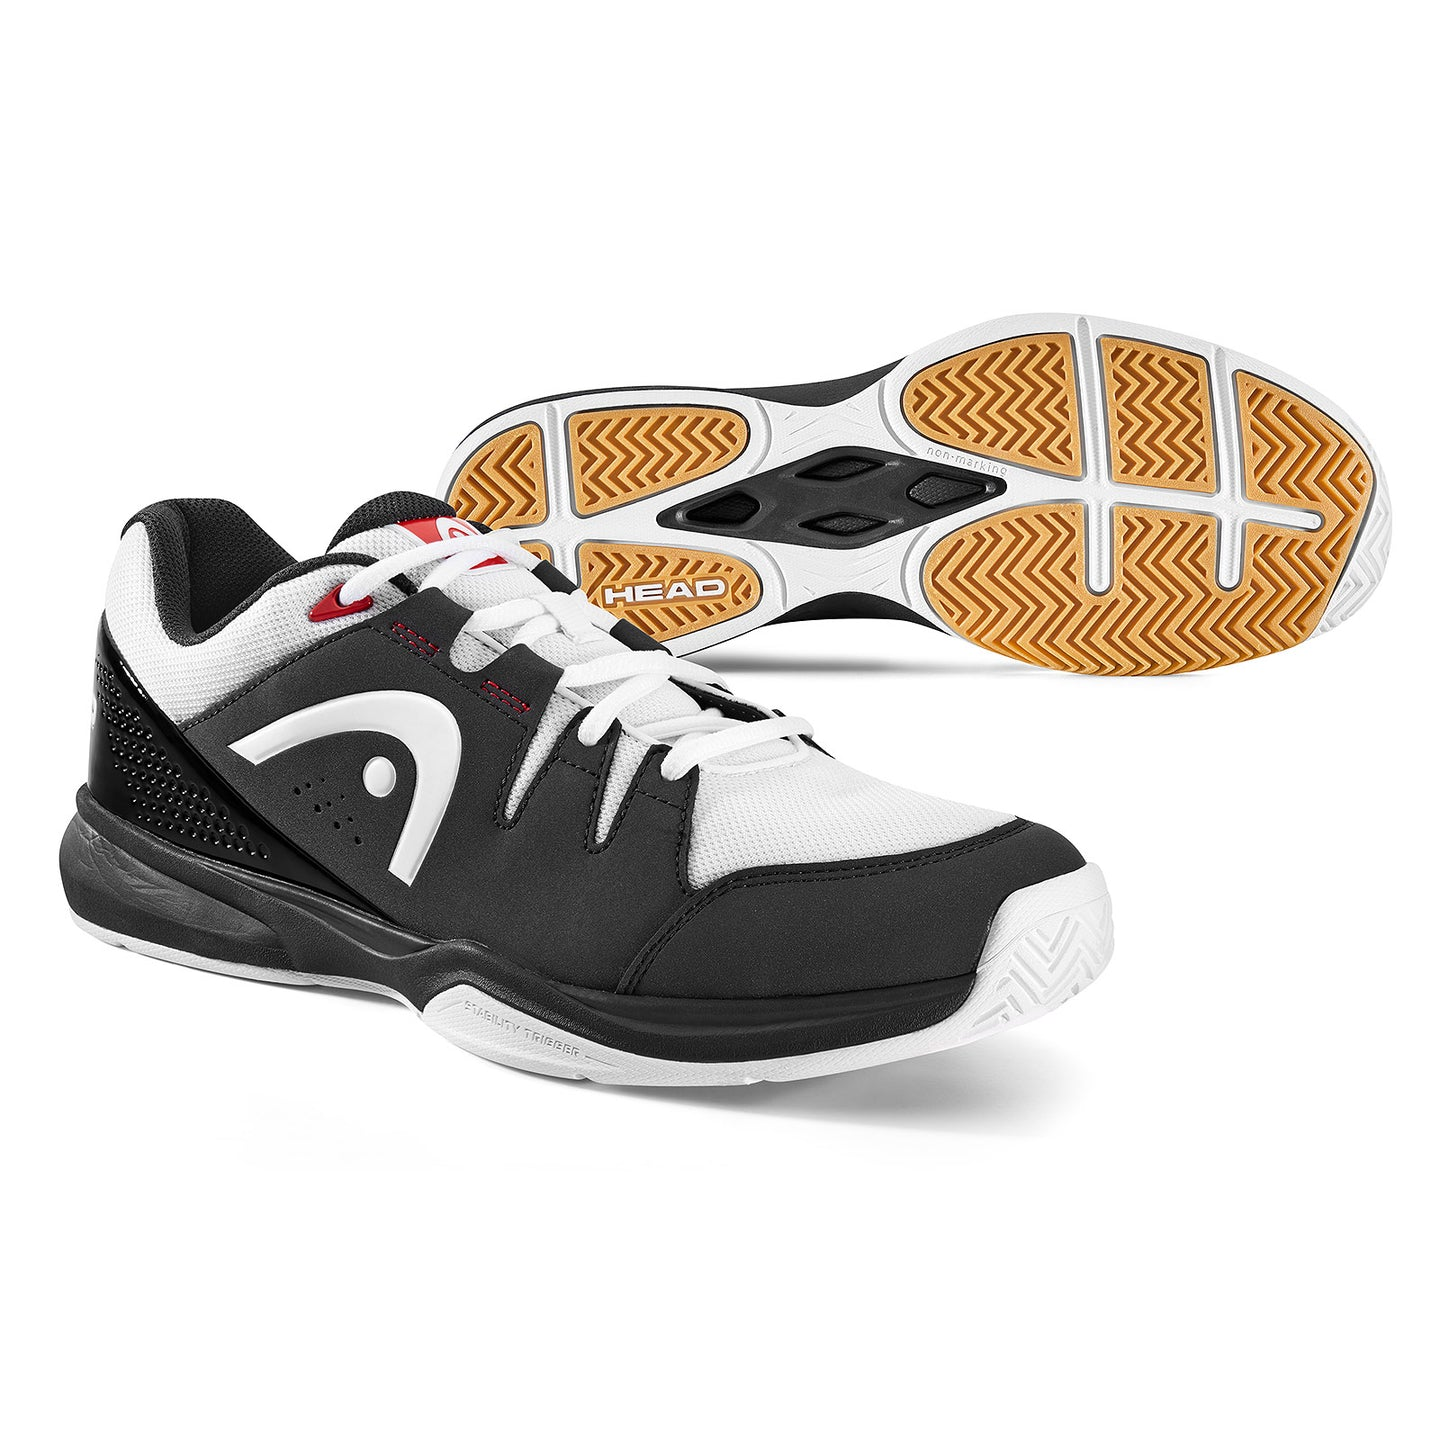 HEAD GRID 3.0 SQUASH SHOE